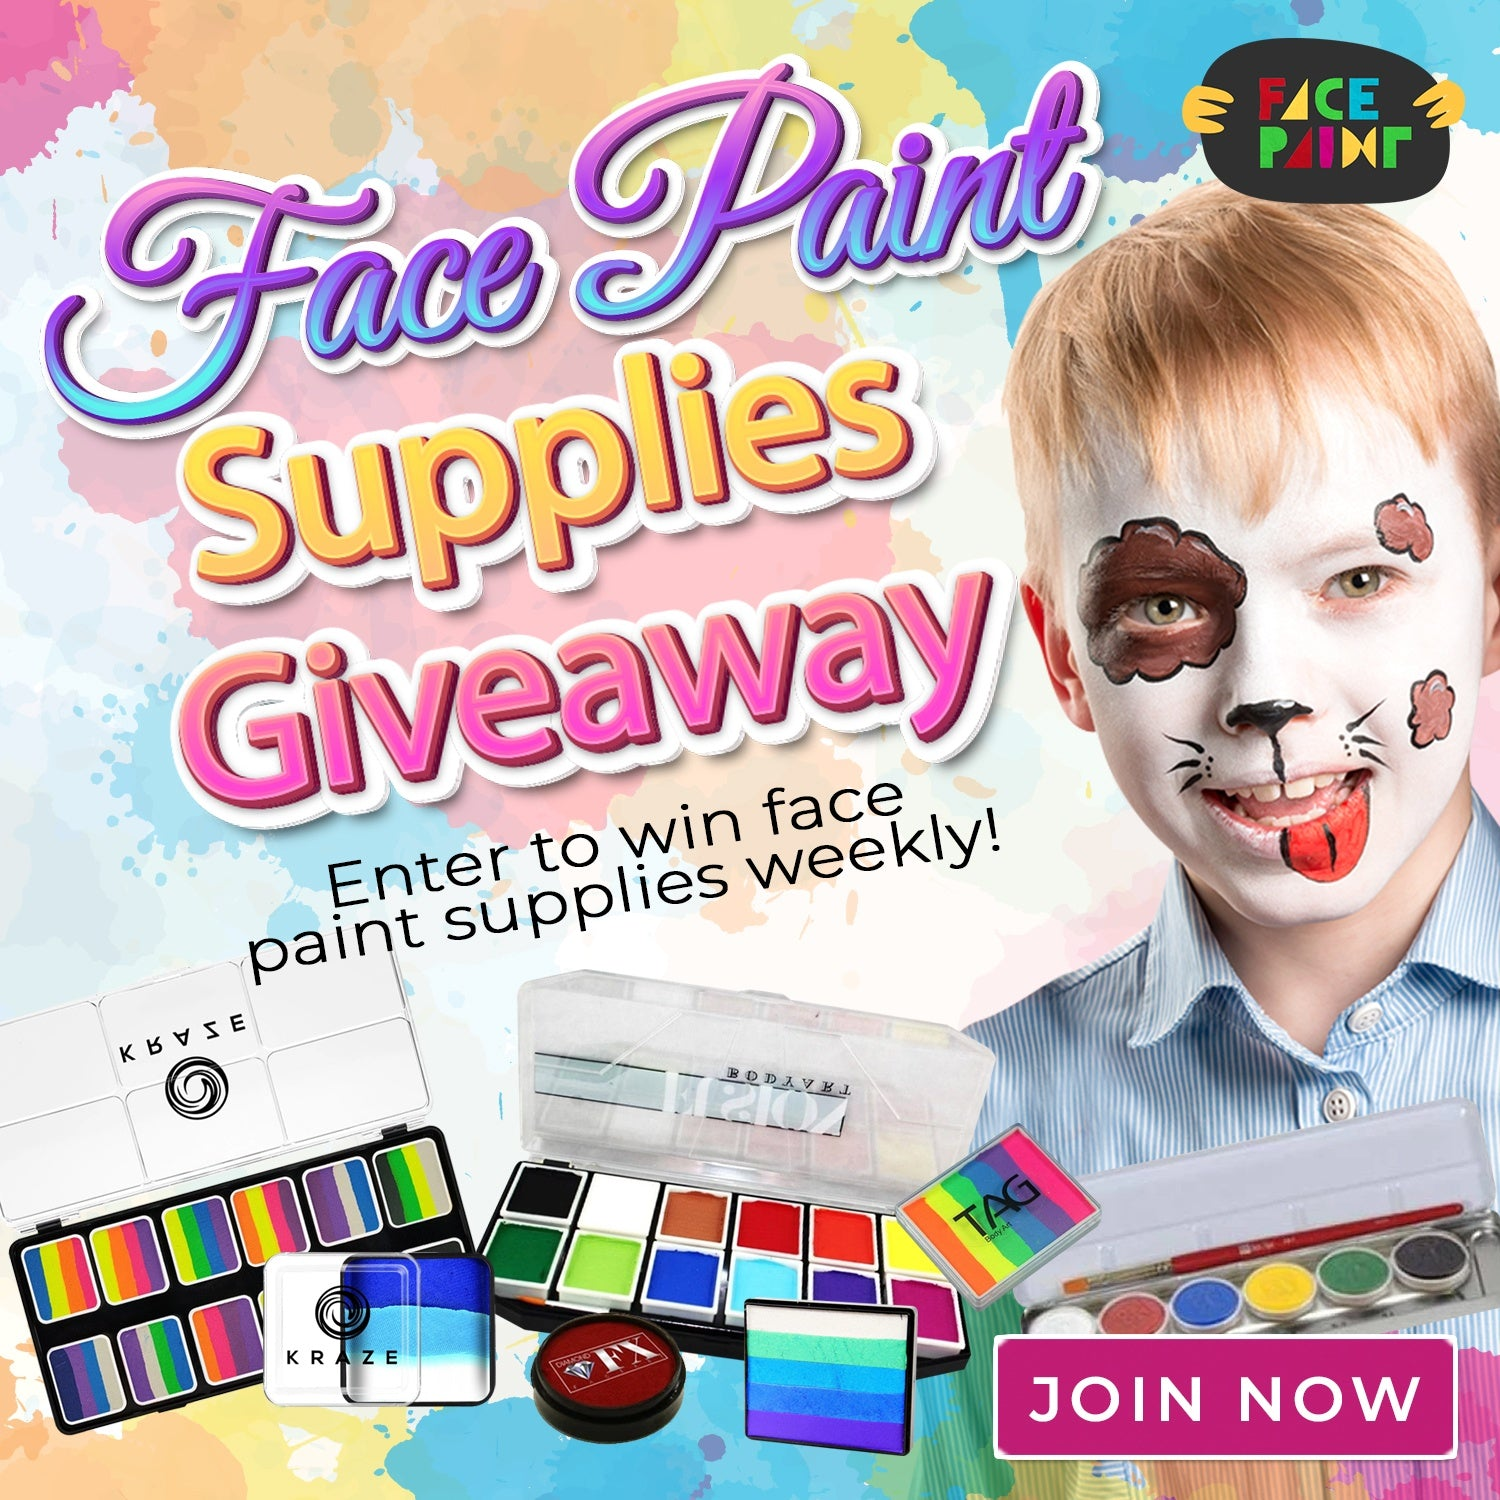 Face Paint Supplies Weekly Giveaway Winners for May 2020